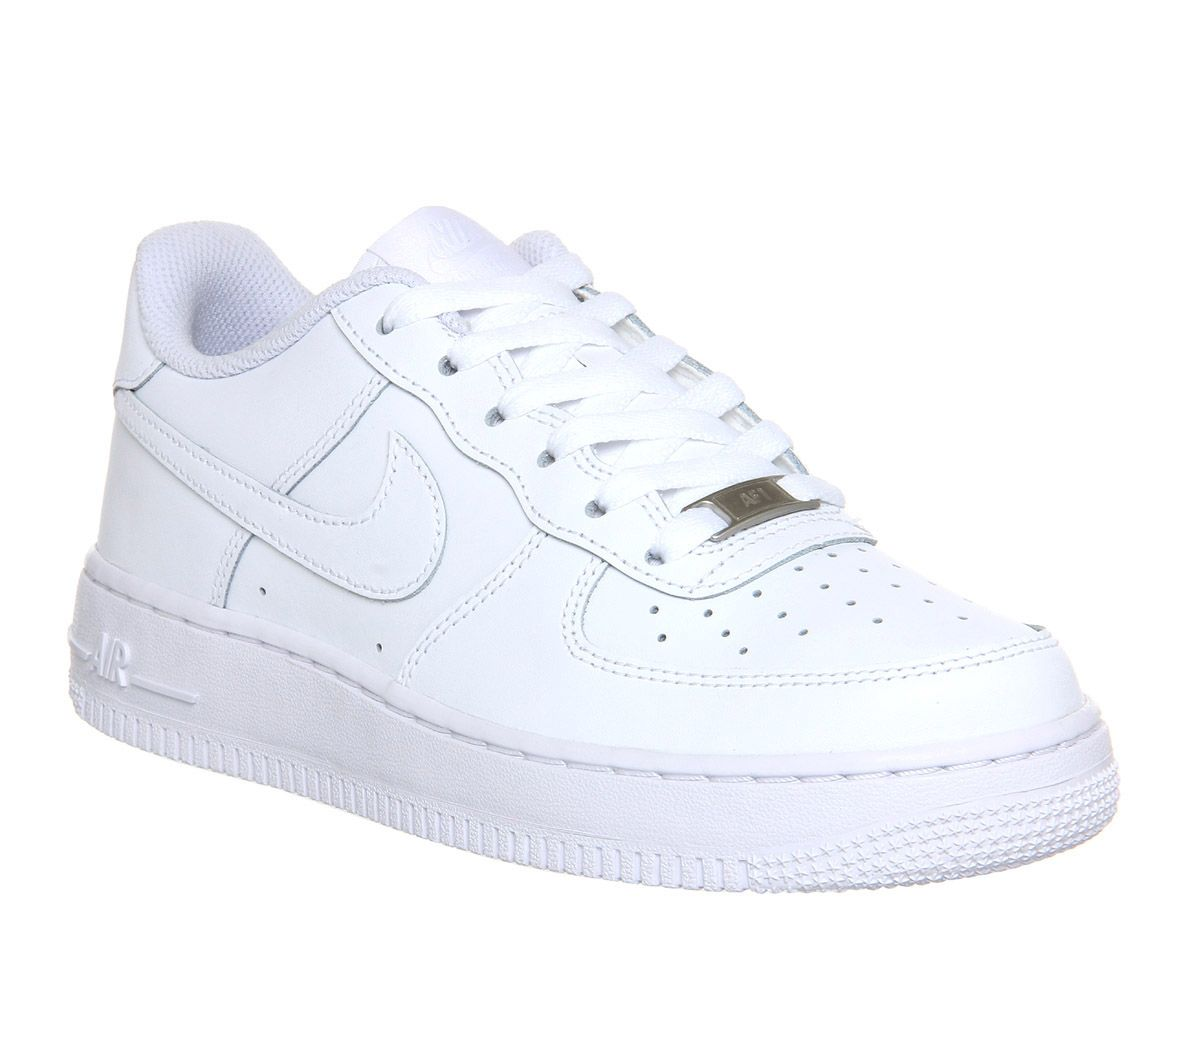 new arrival 40a74 4287b Nike Air Force 1 Trainers White - Kids Trainers